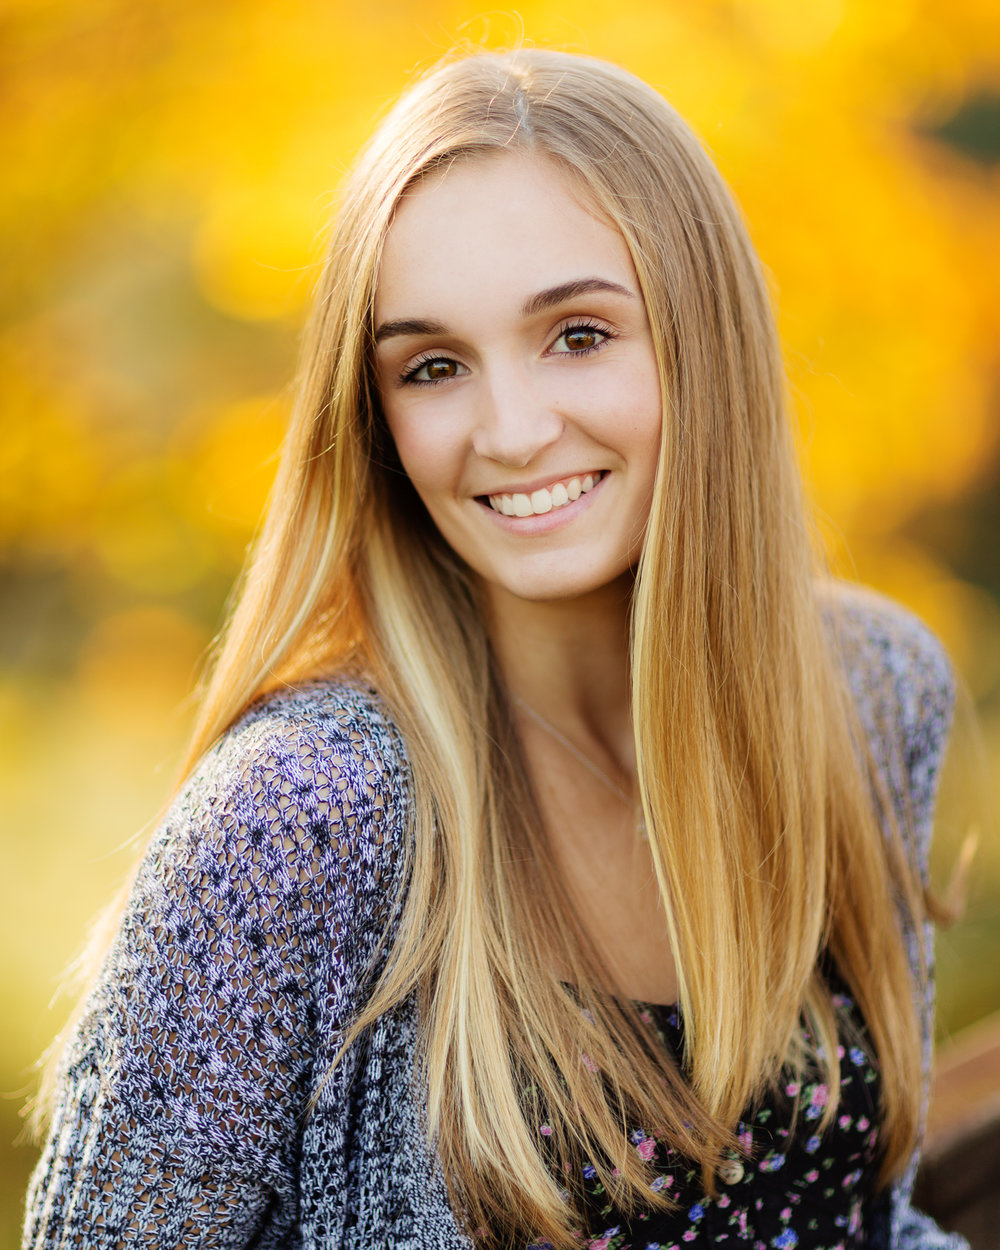 ariellanoellephotography-portraiture-highschool-seniors-top-seattle-area-photographer-1-32.jpg